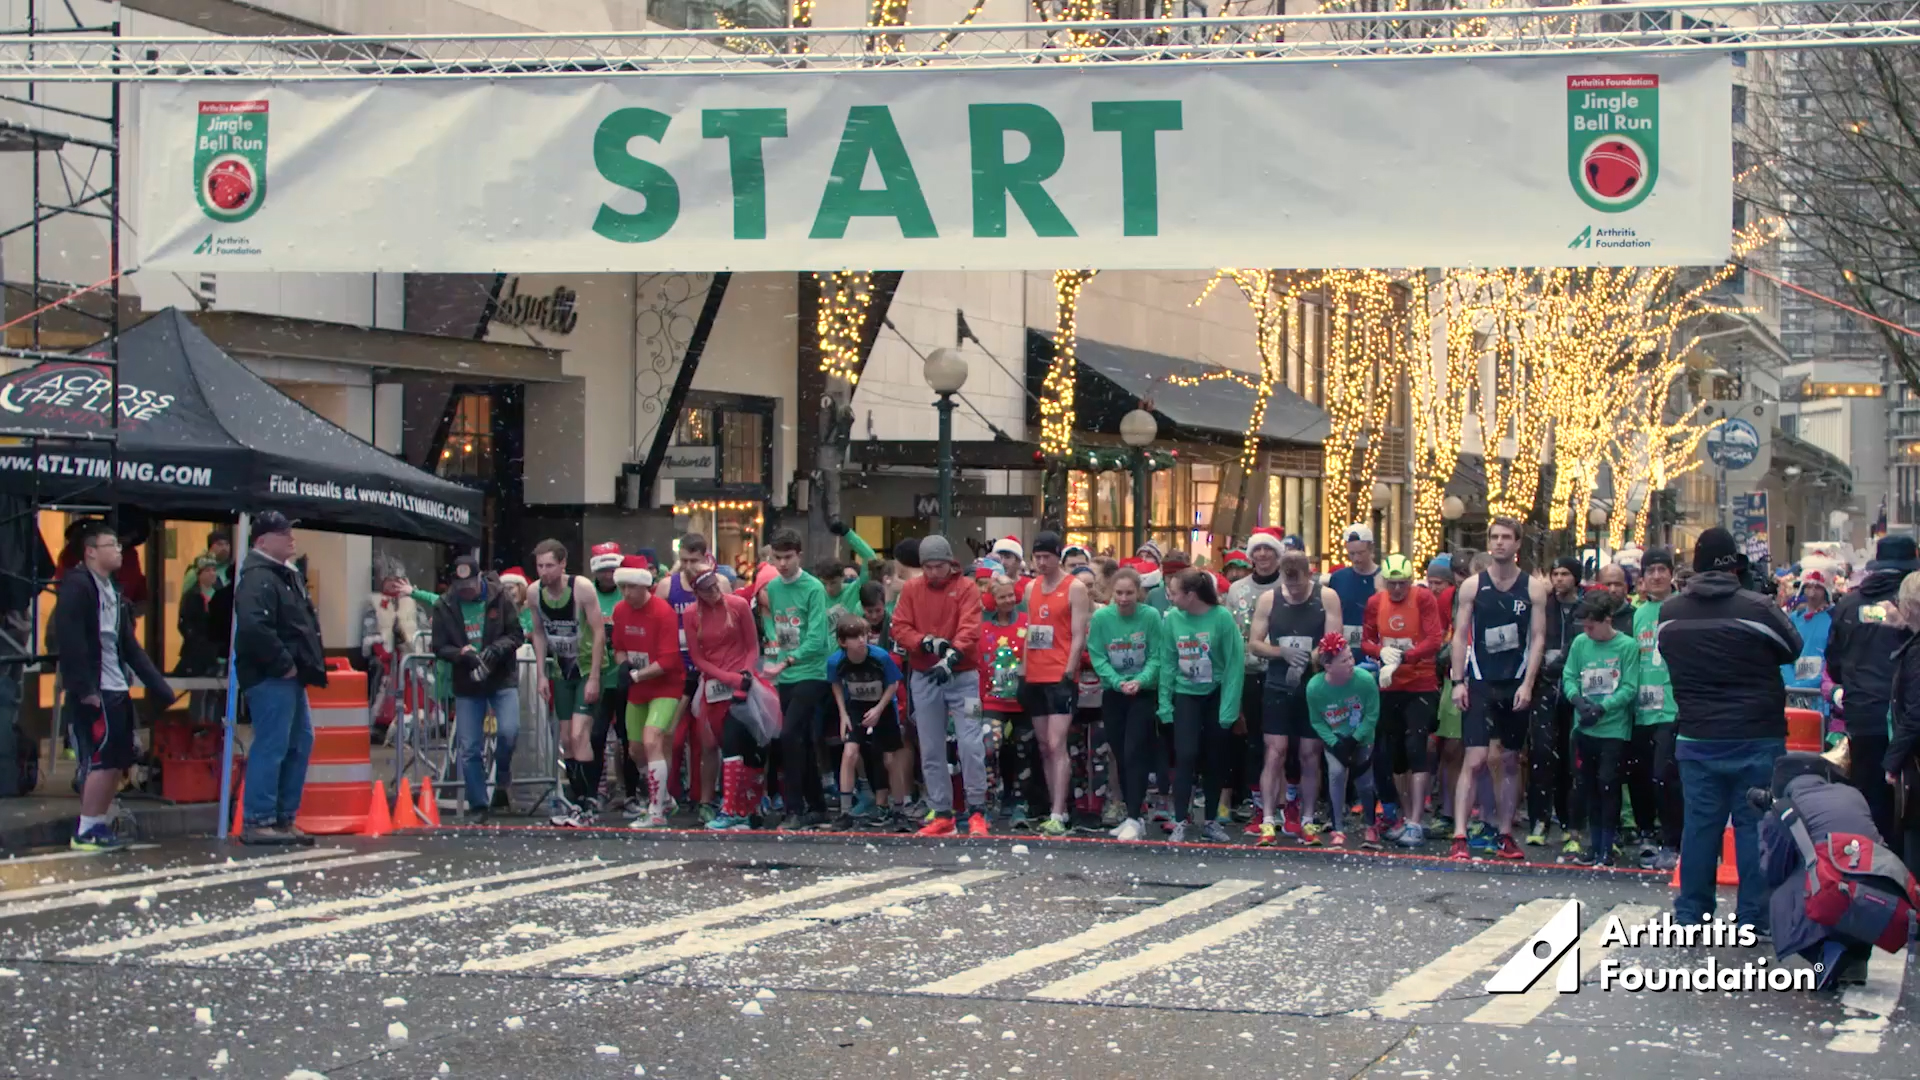 THE ARTHRITIS FOUNDATION OFFERS NEW PSAs:  JINGLE BELL RUN 2018